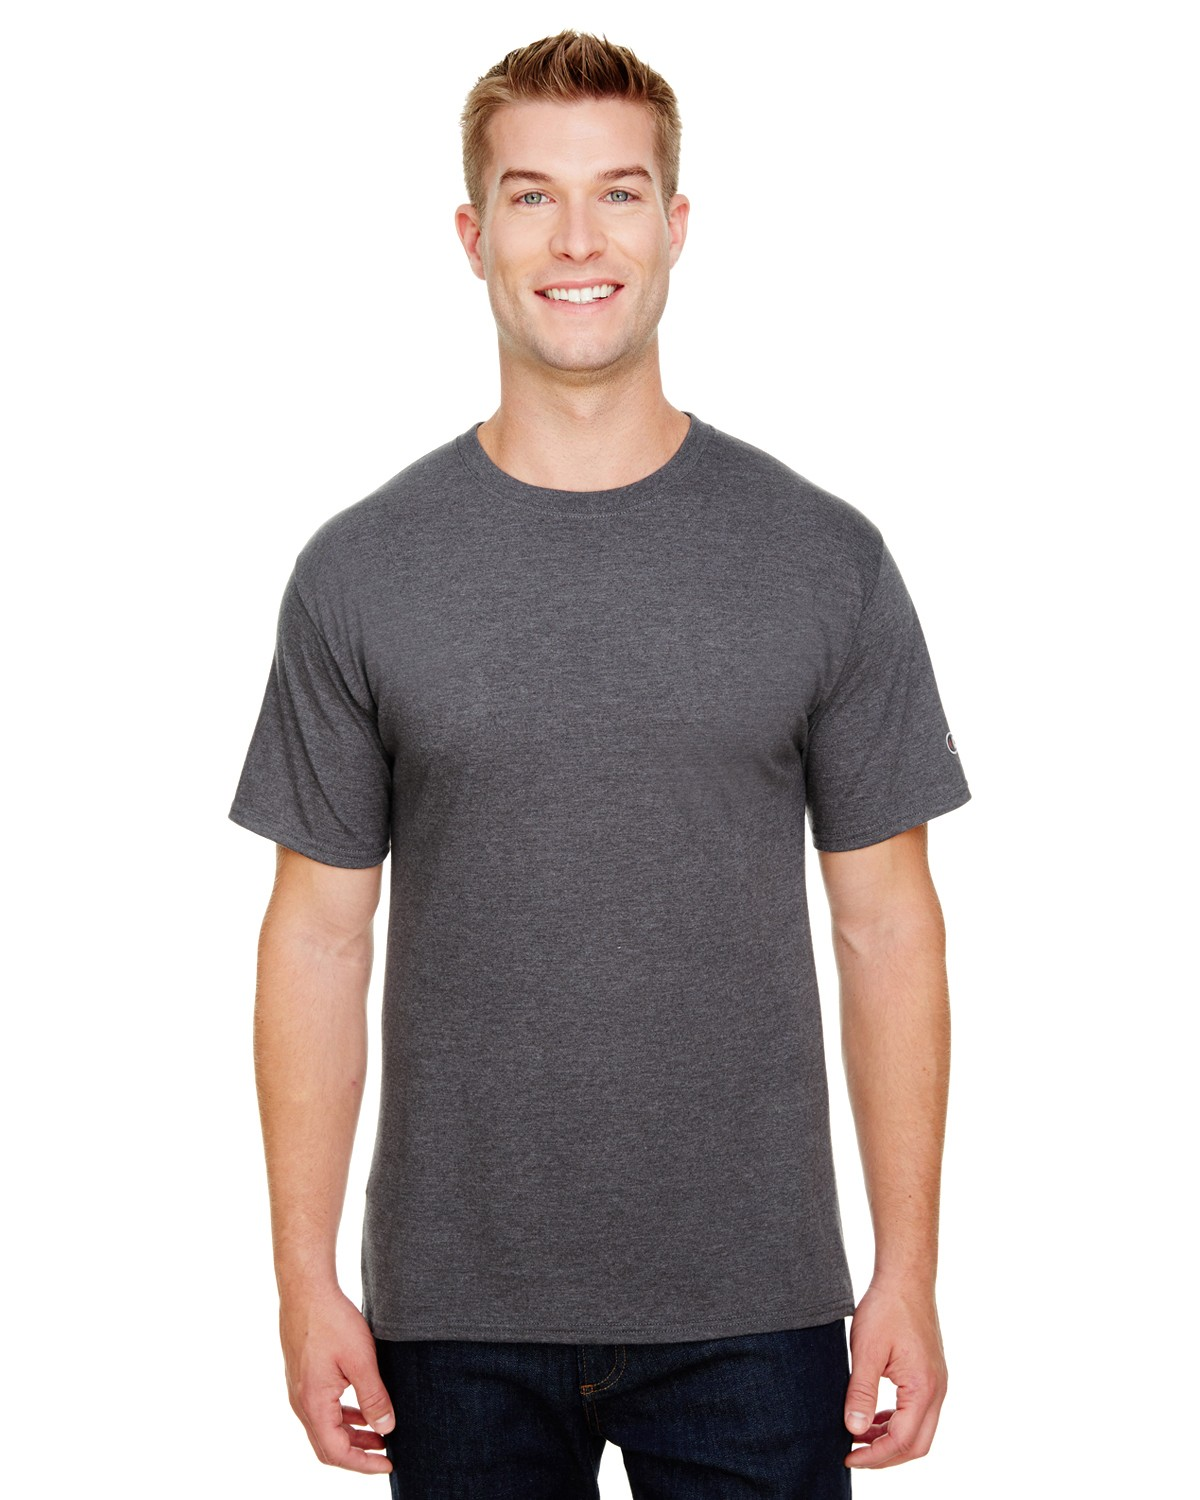 CP10 Champion CHARCOAL HEATHER